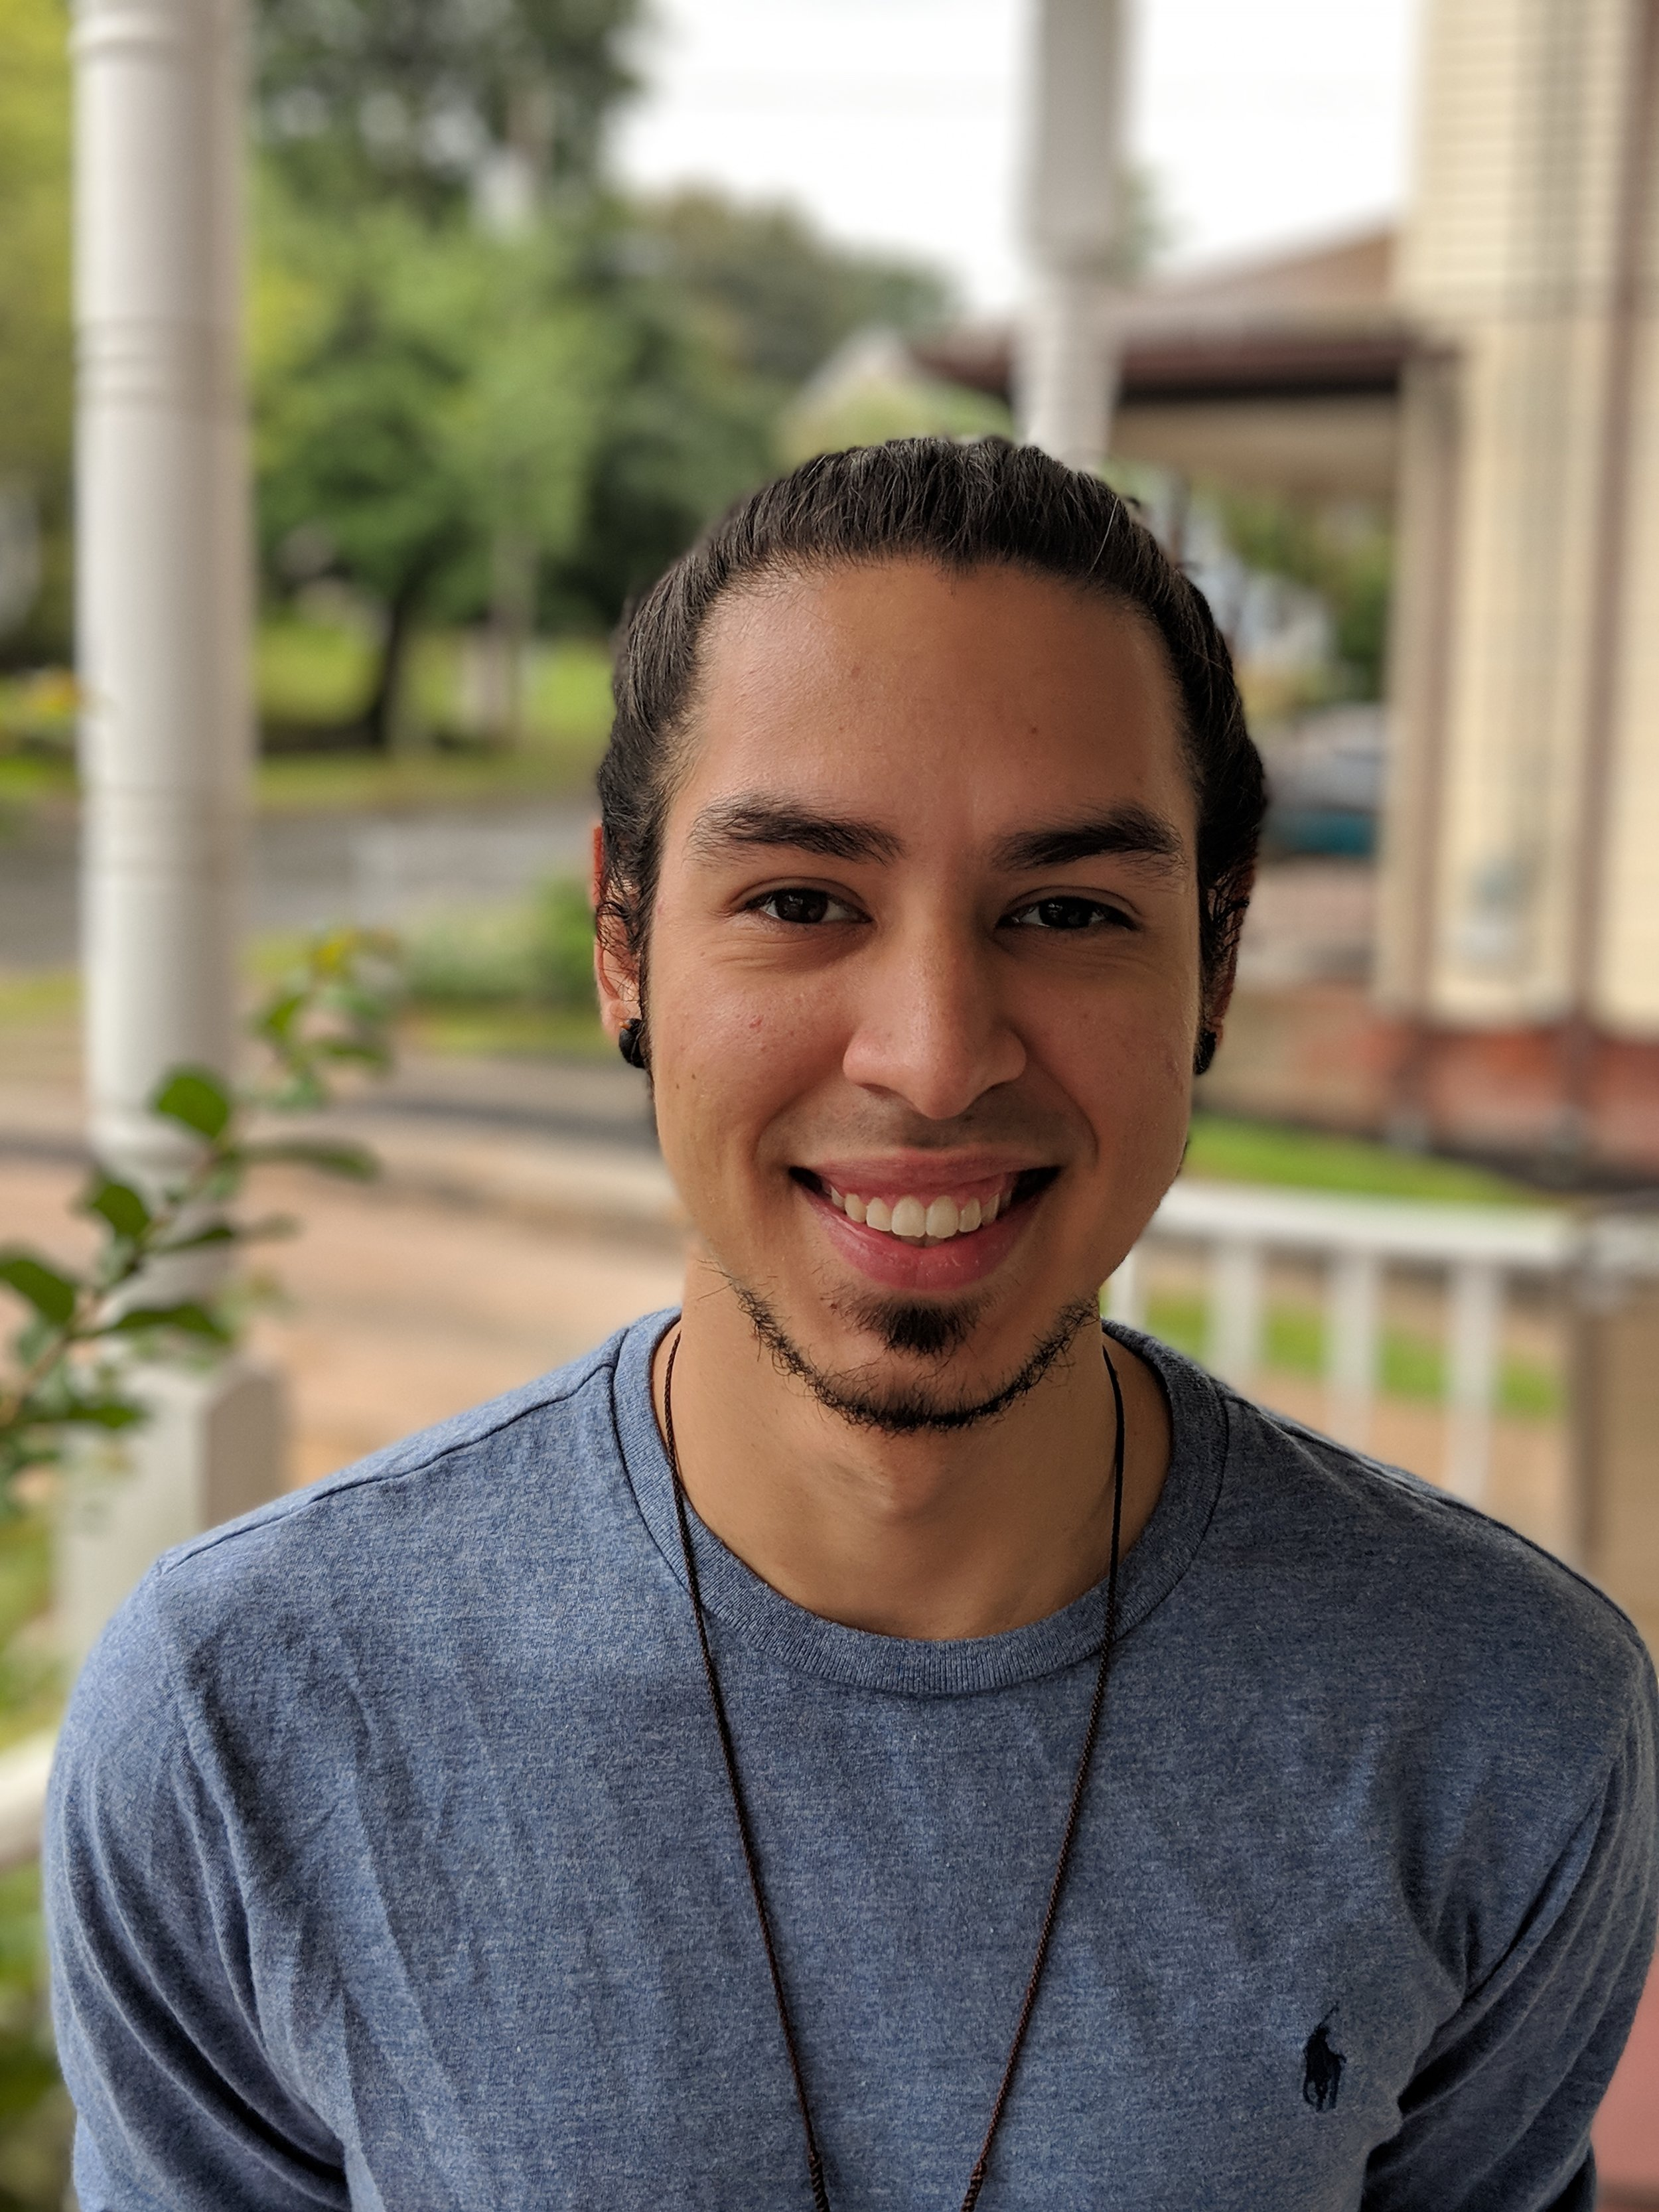 Adonis Olivera, LMT Licensed Massage Therapist  Adonis graduated from the Connecticut Center for Massage Therapy in Newington. His passion for bodywork and wellness came from a young age. When his mother would massage his head and back to soothe him when he was sick. It wasn't until high school that he decided to pursue massage therapy. He studied AP Biology and AP Anatomy and was fascinated with the human body. His fascination continues to this day.  Adonis enjoys traveling and hopes to travel and massage in various countries across the world. He has travelled to Cusco, Peru and volunteered at The Healing House. He's also been to Ecuador, Iceland, and travelled cross-country to the west coast and saw many national parks on the way.